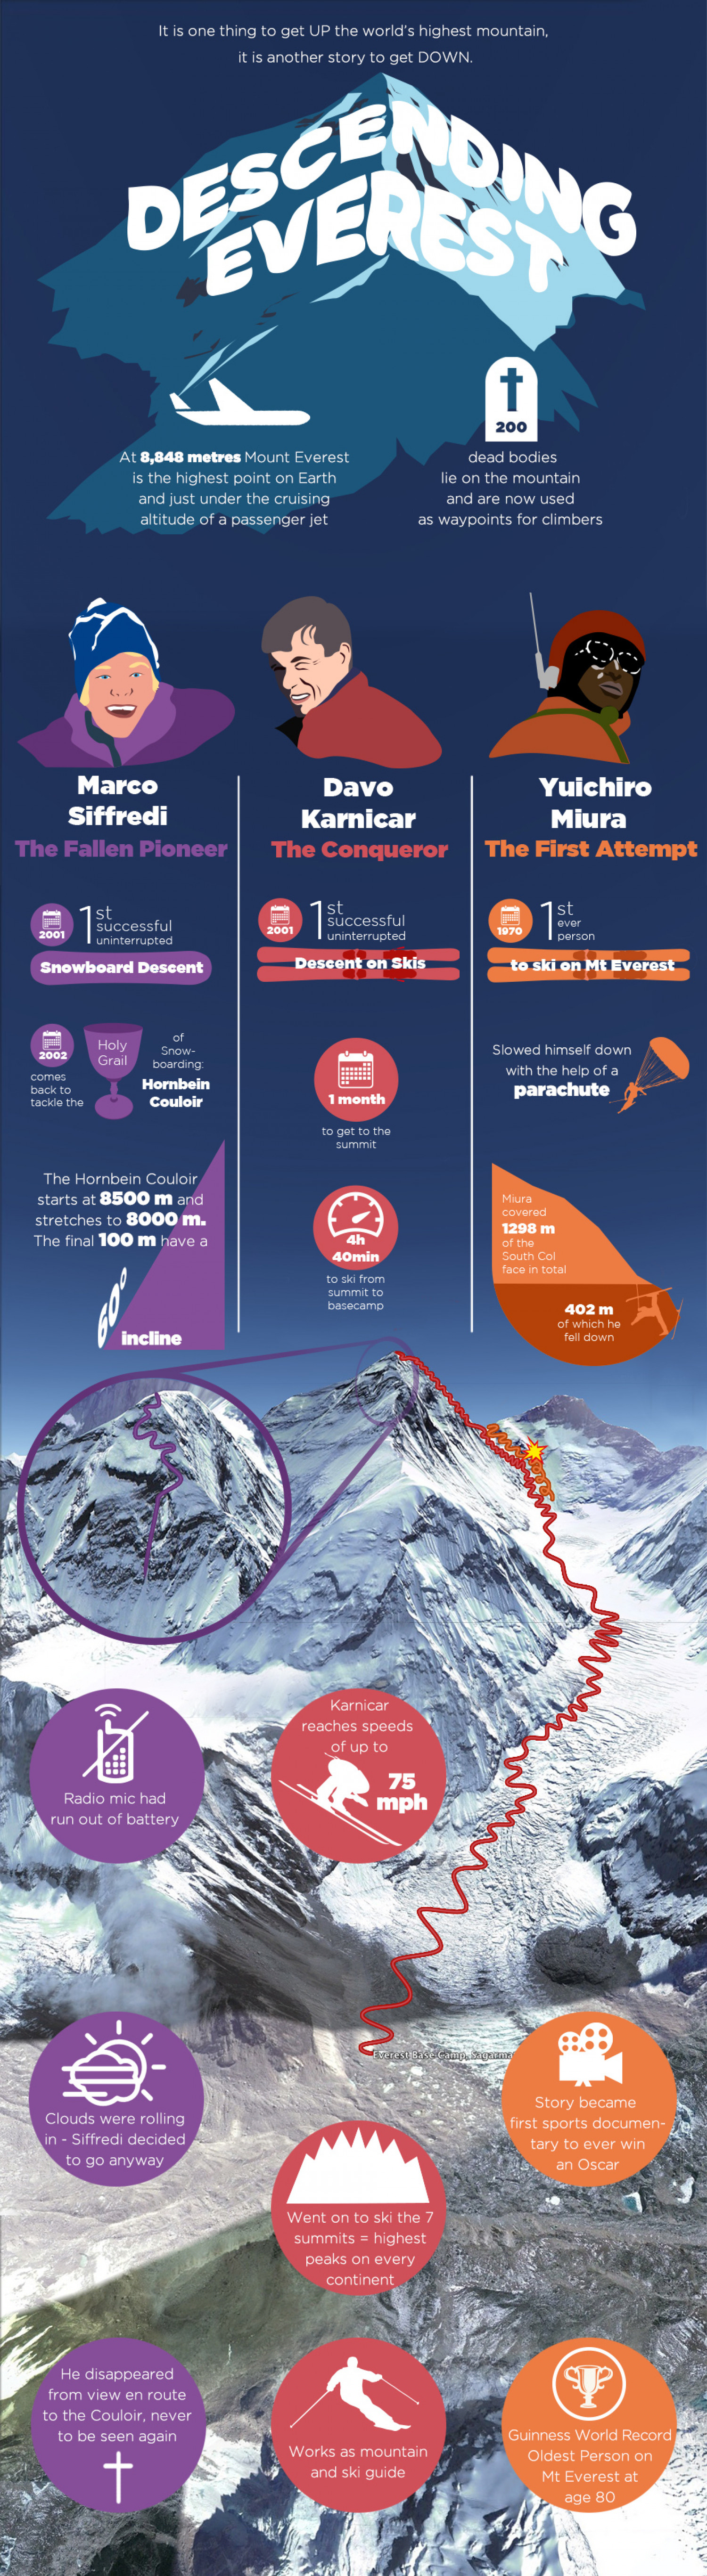 Descending Everest Infographic